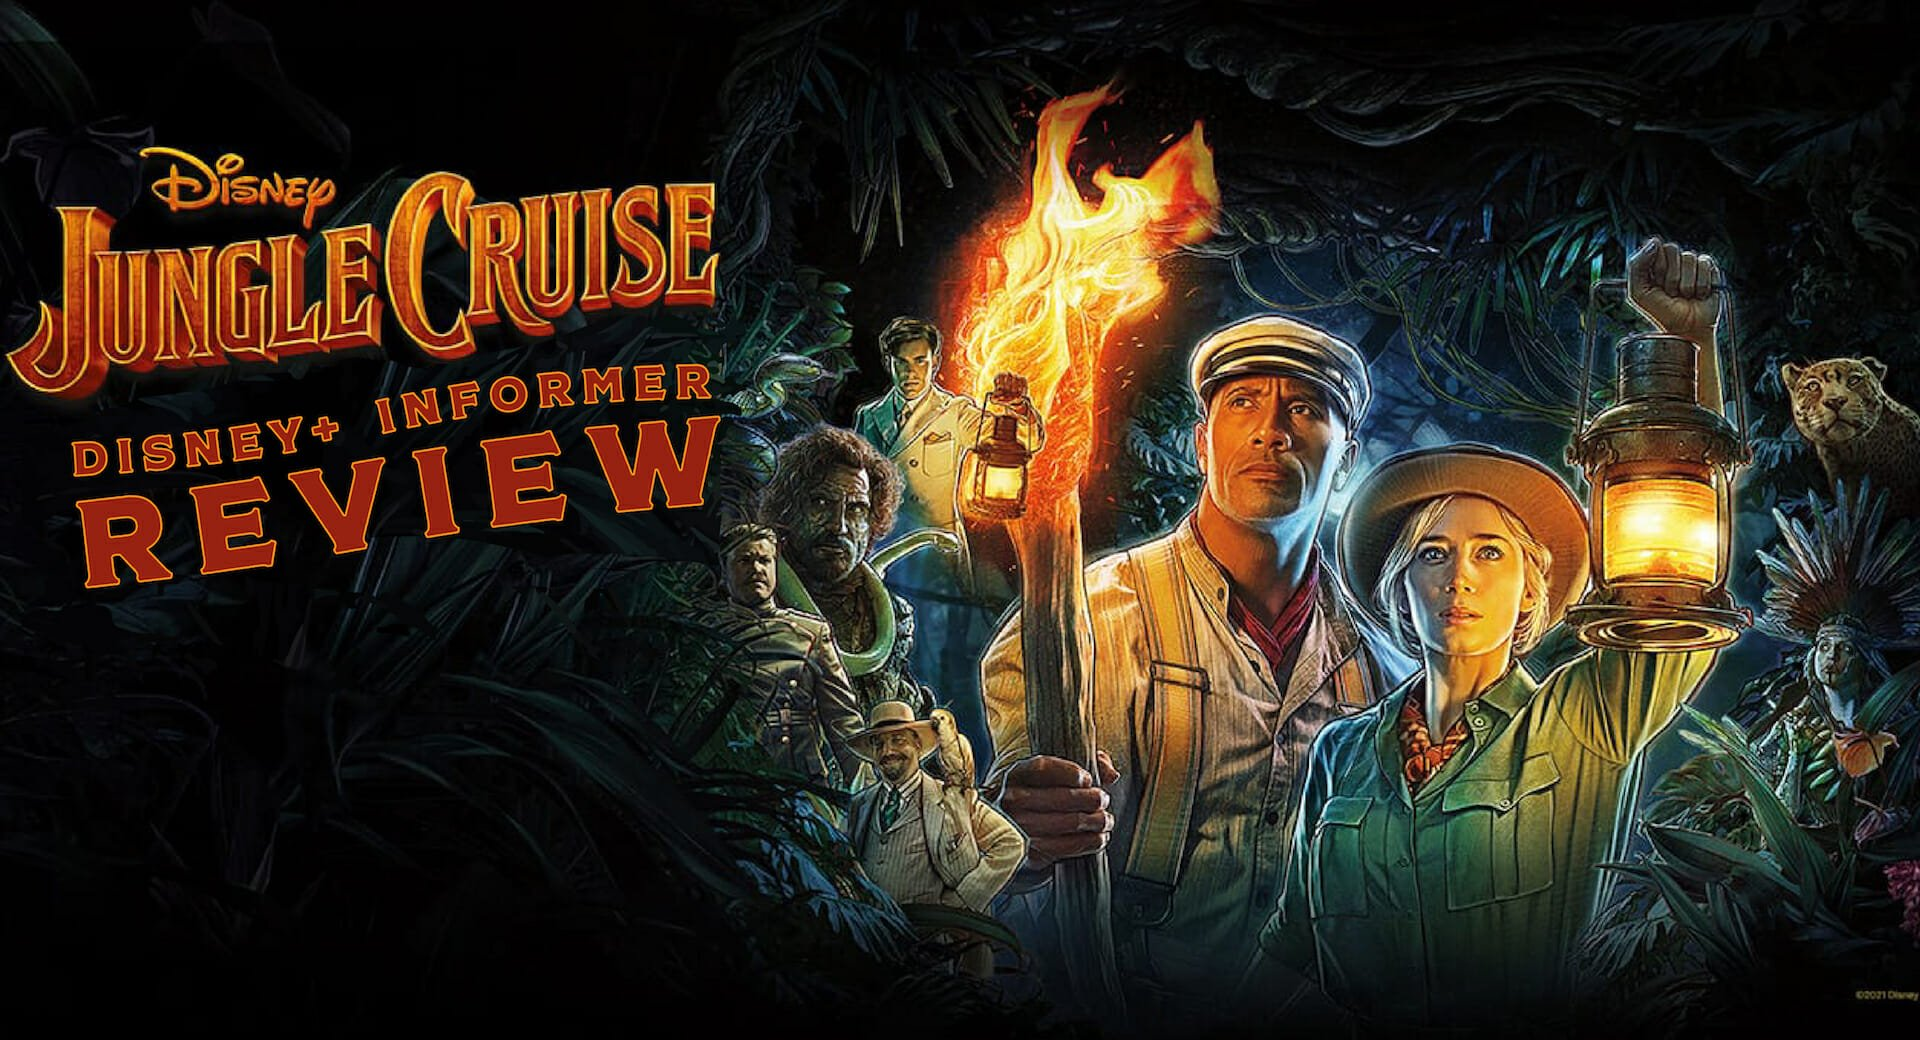 Jungle Cruise Review: It's Full Steam Ahead as Disney Gives us the Film of the Summer!